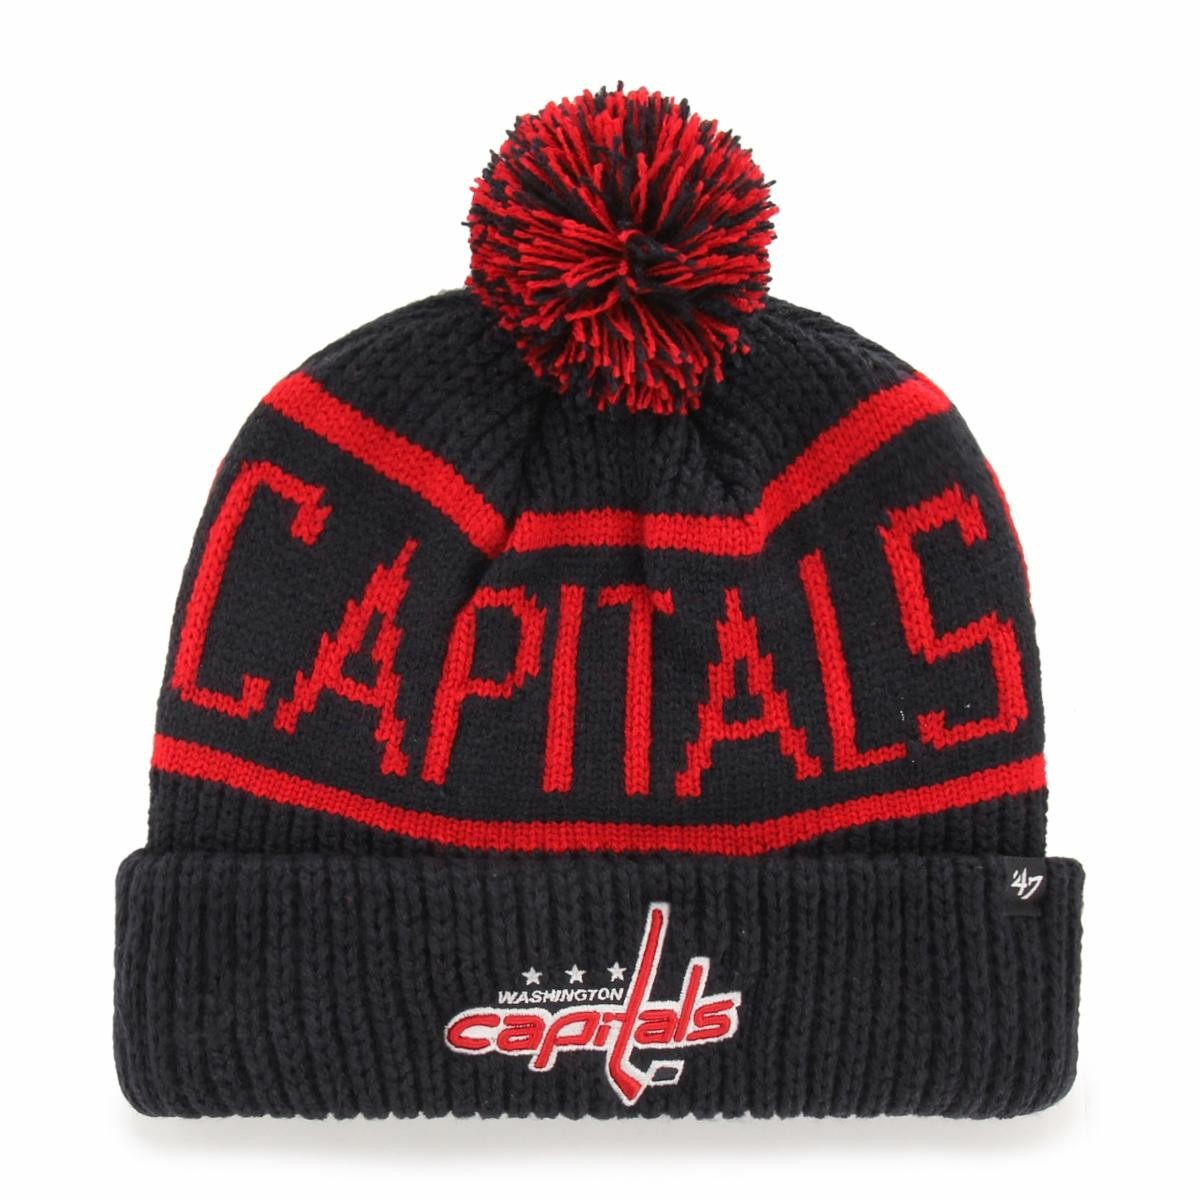 BRAND 47 Washington Capitals Calgary Cuff Knit Winter Hat